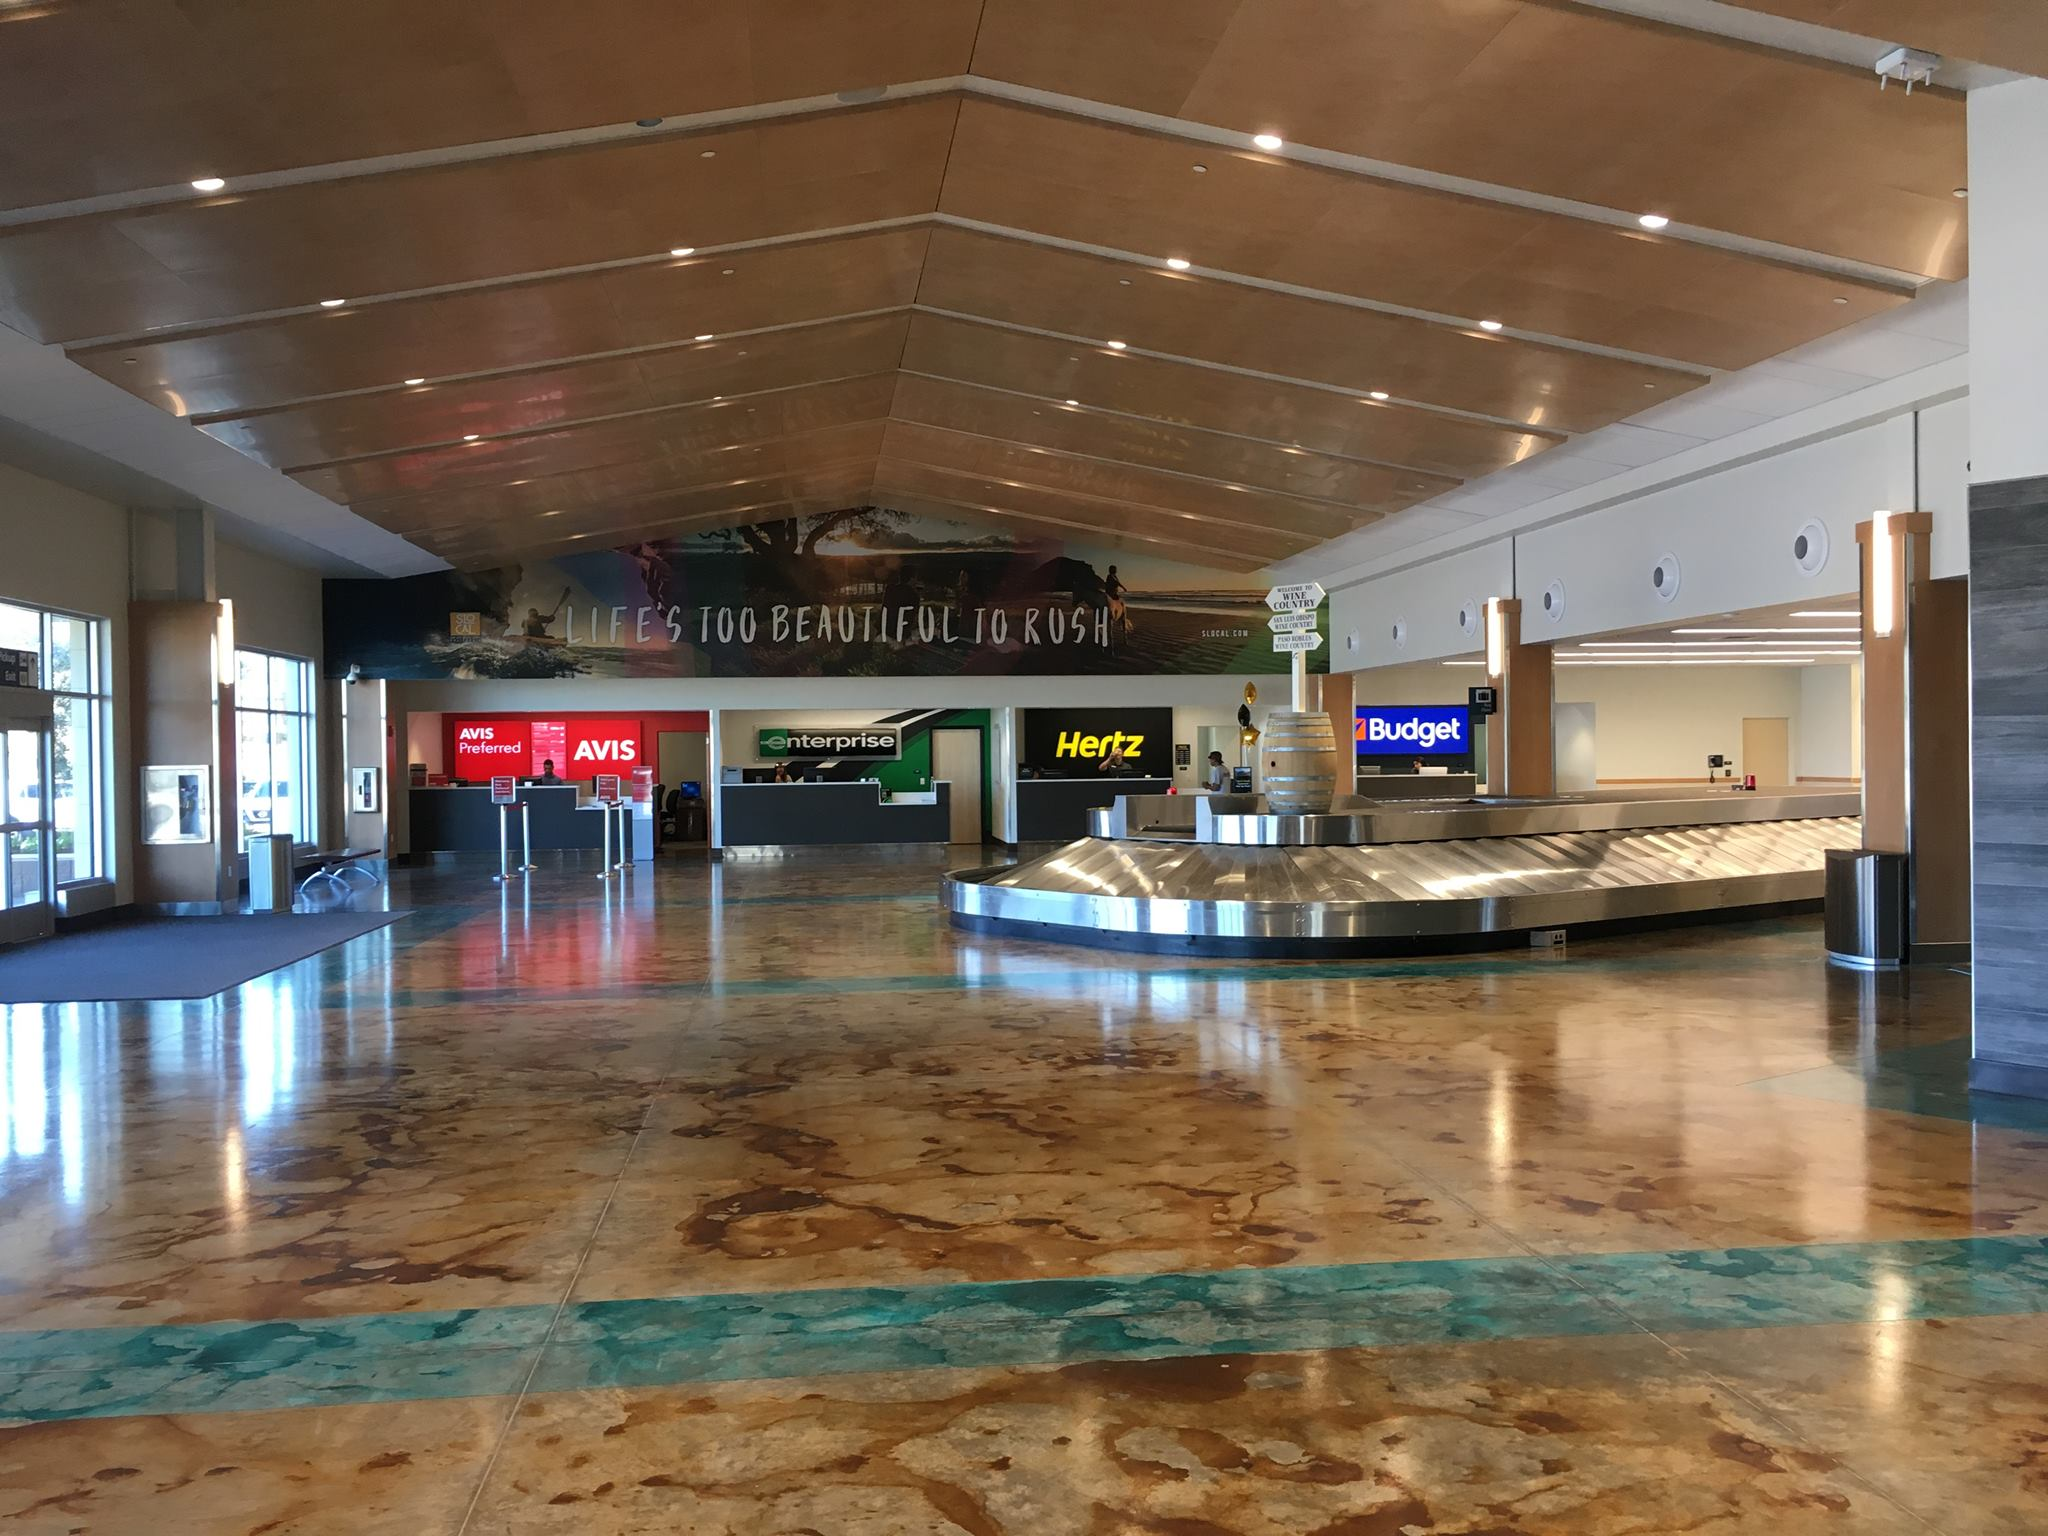 SBP Airport Relocation - San Louis Obispo, CA - Provided and installed columns, wainscoting, and light guards, in addition to the installation of artwork and other aviation inspired decor.